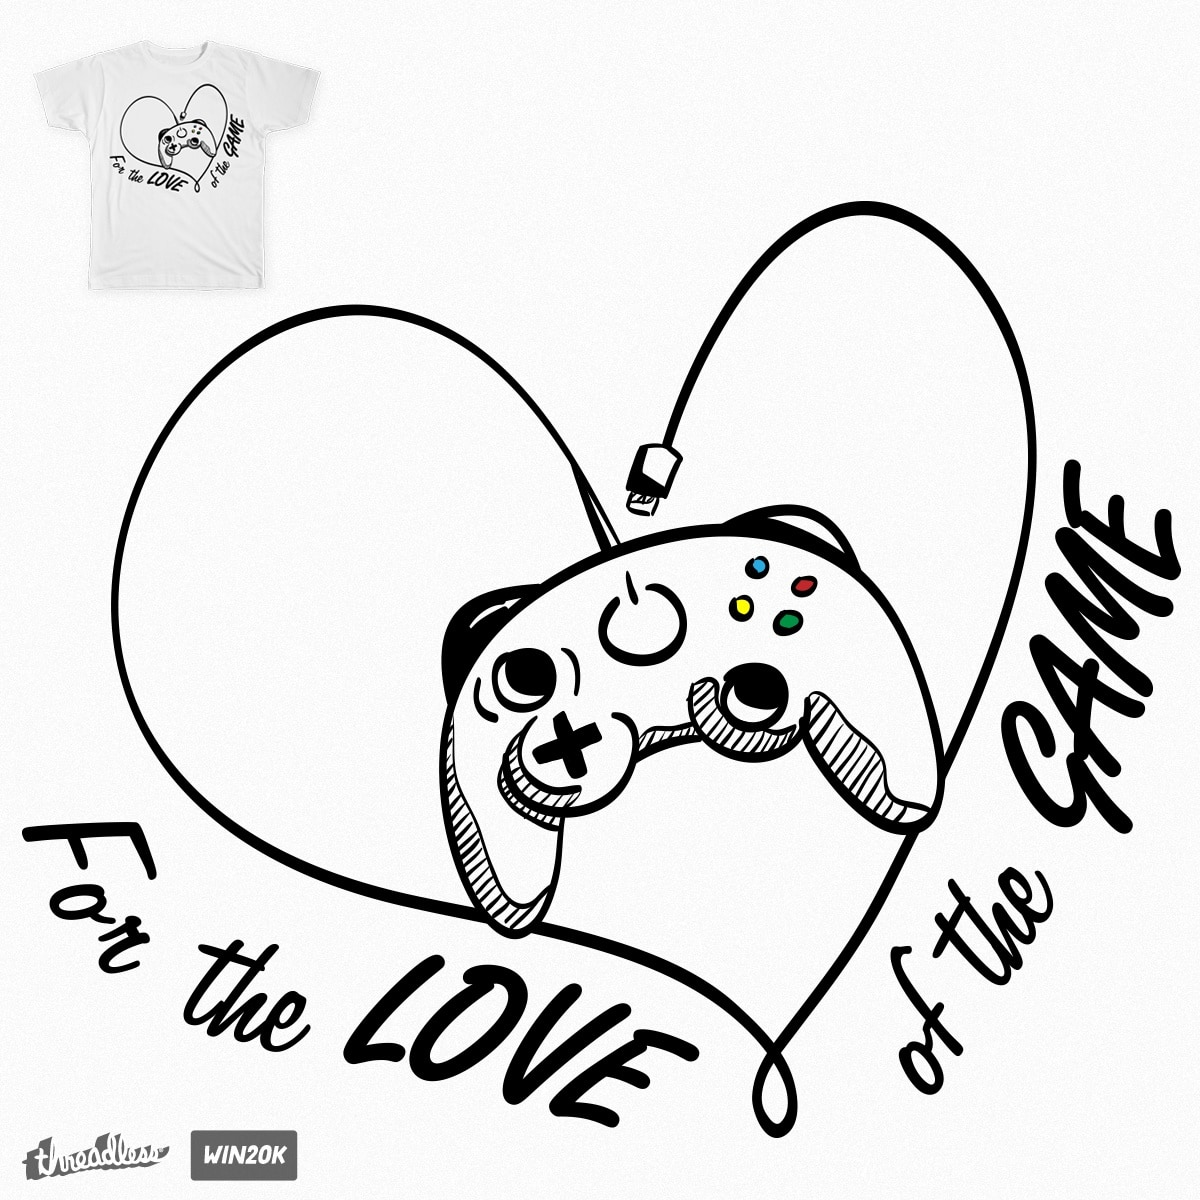 For the love of the game. by RadRocketDesign on Threadless